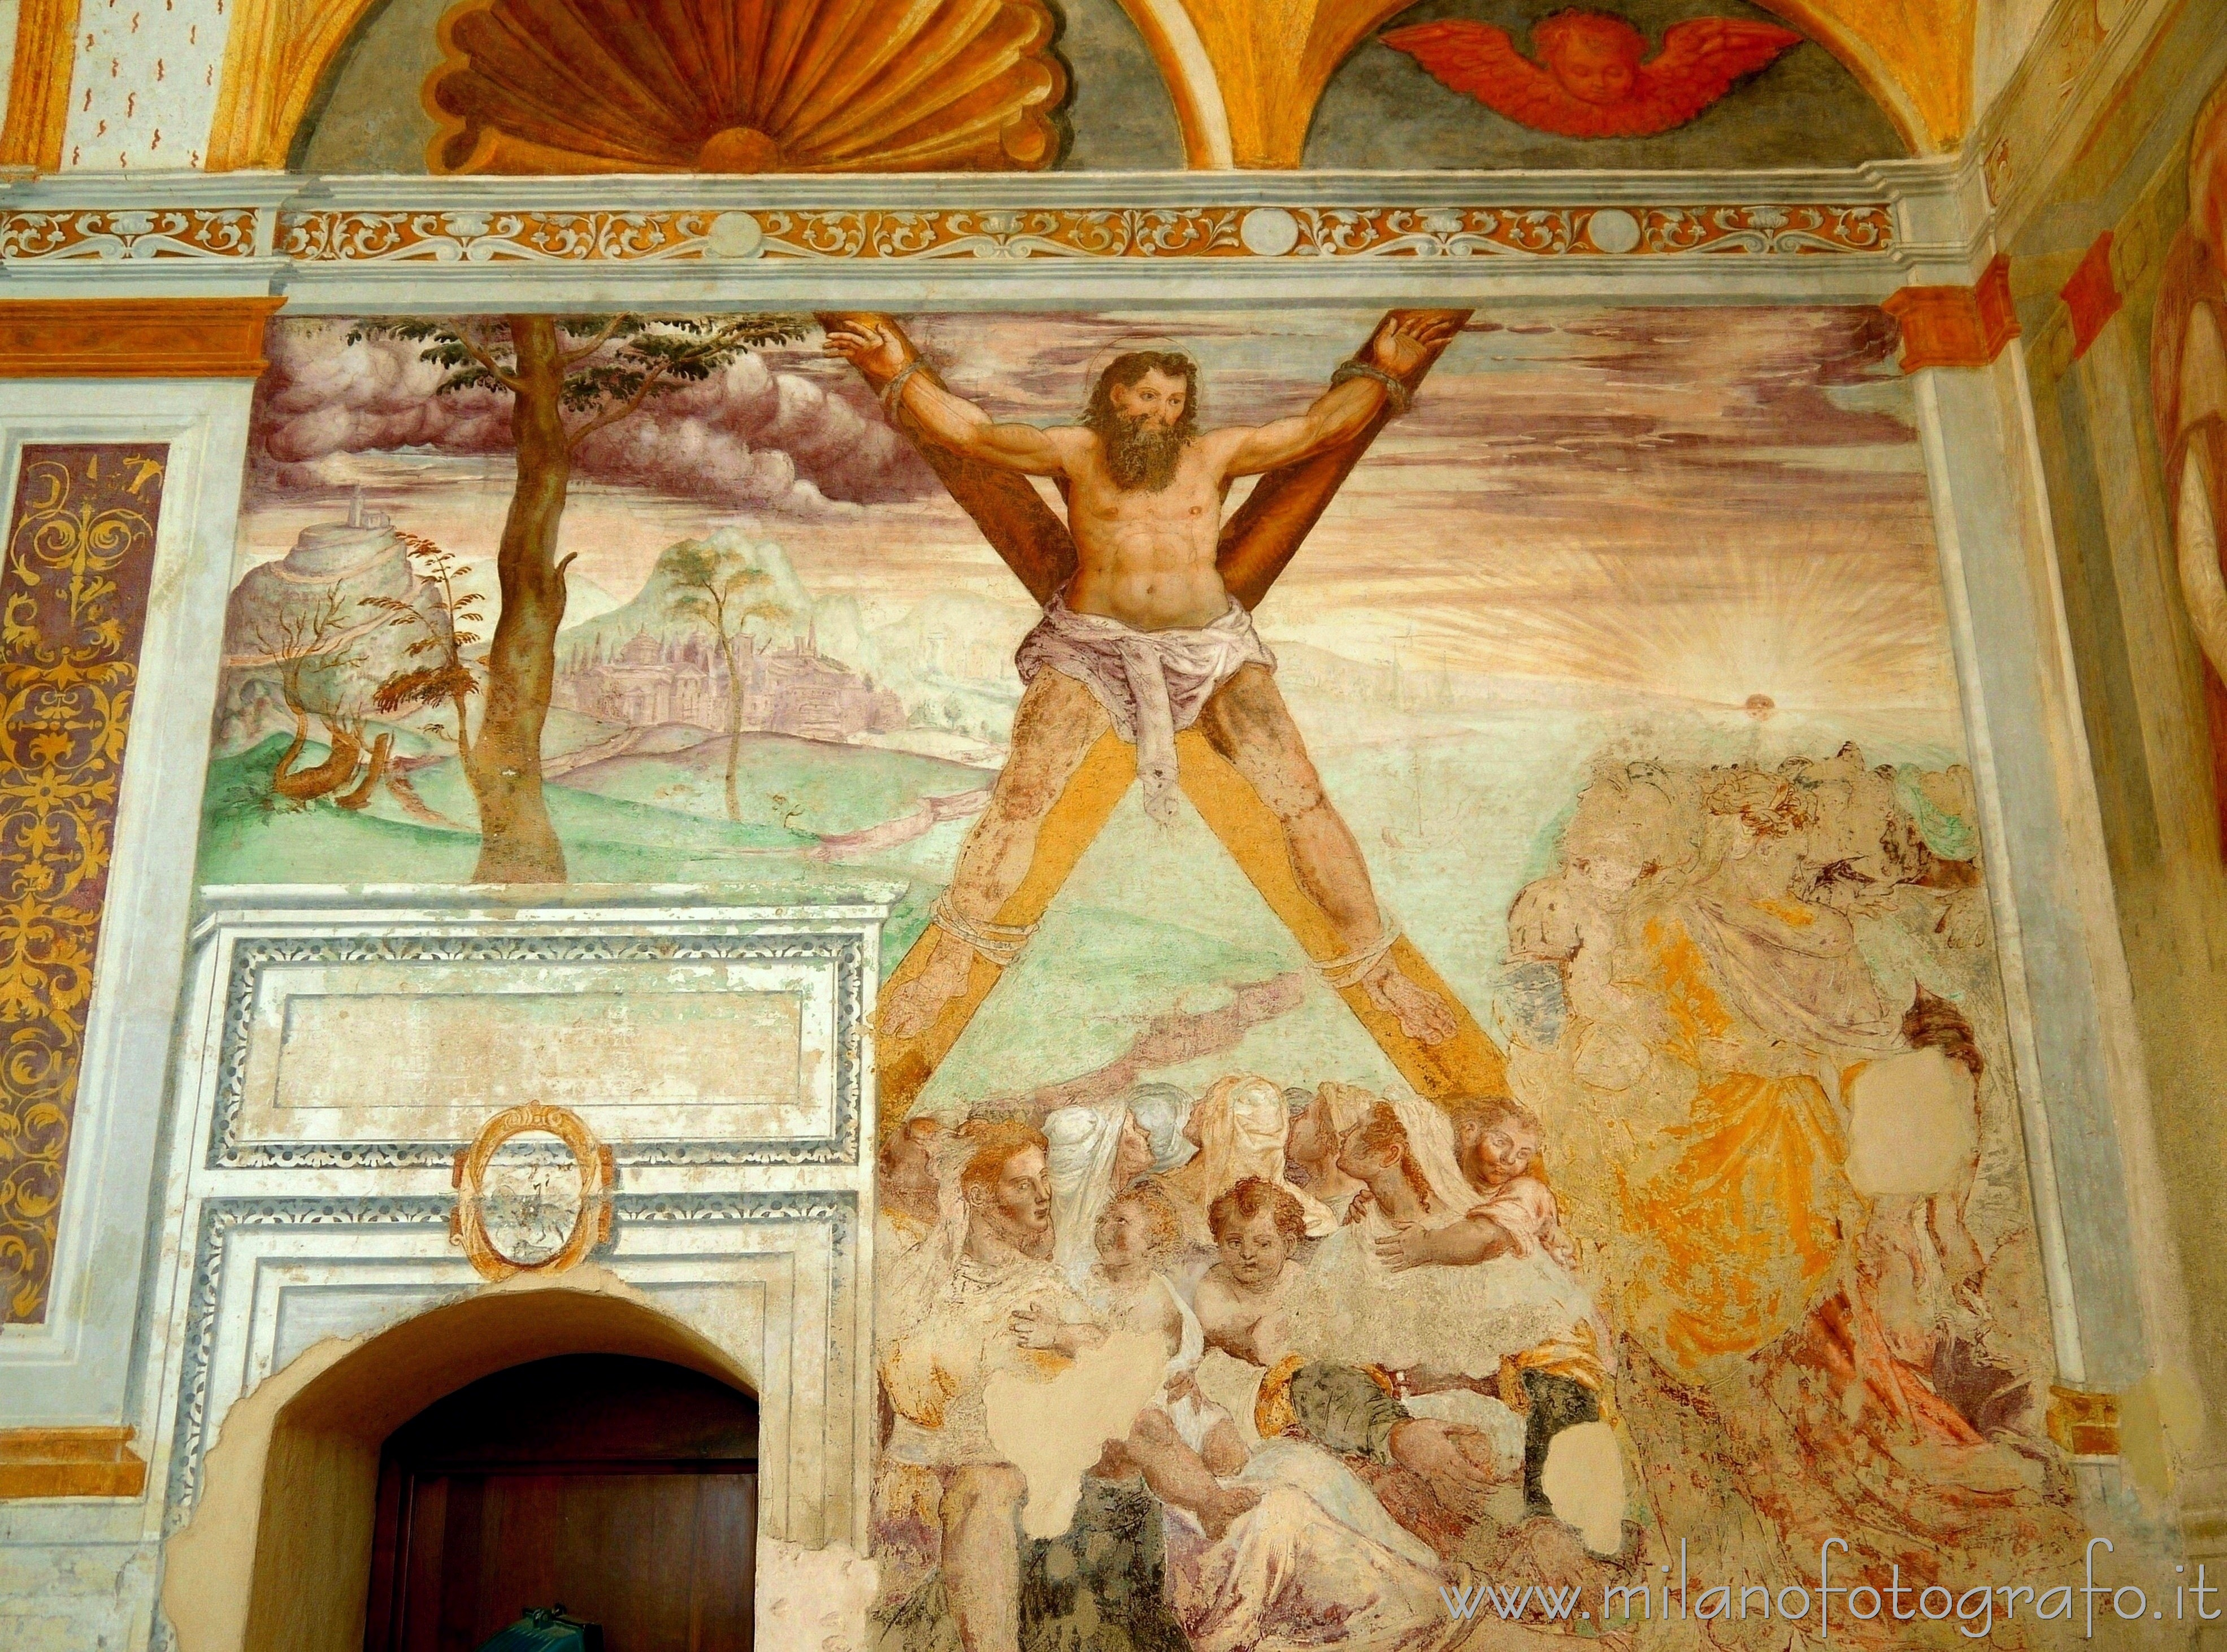 Melzo (Milan, Italy): Fresco of St. Andrew's martyrdom in the Church of Sant'Andrea - Melzo (Milan, Italy)